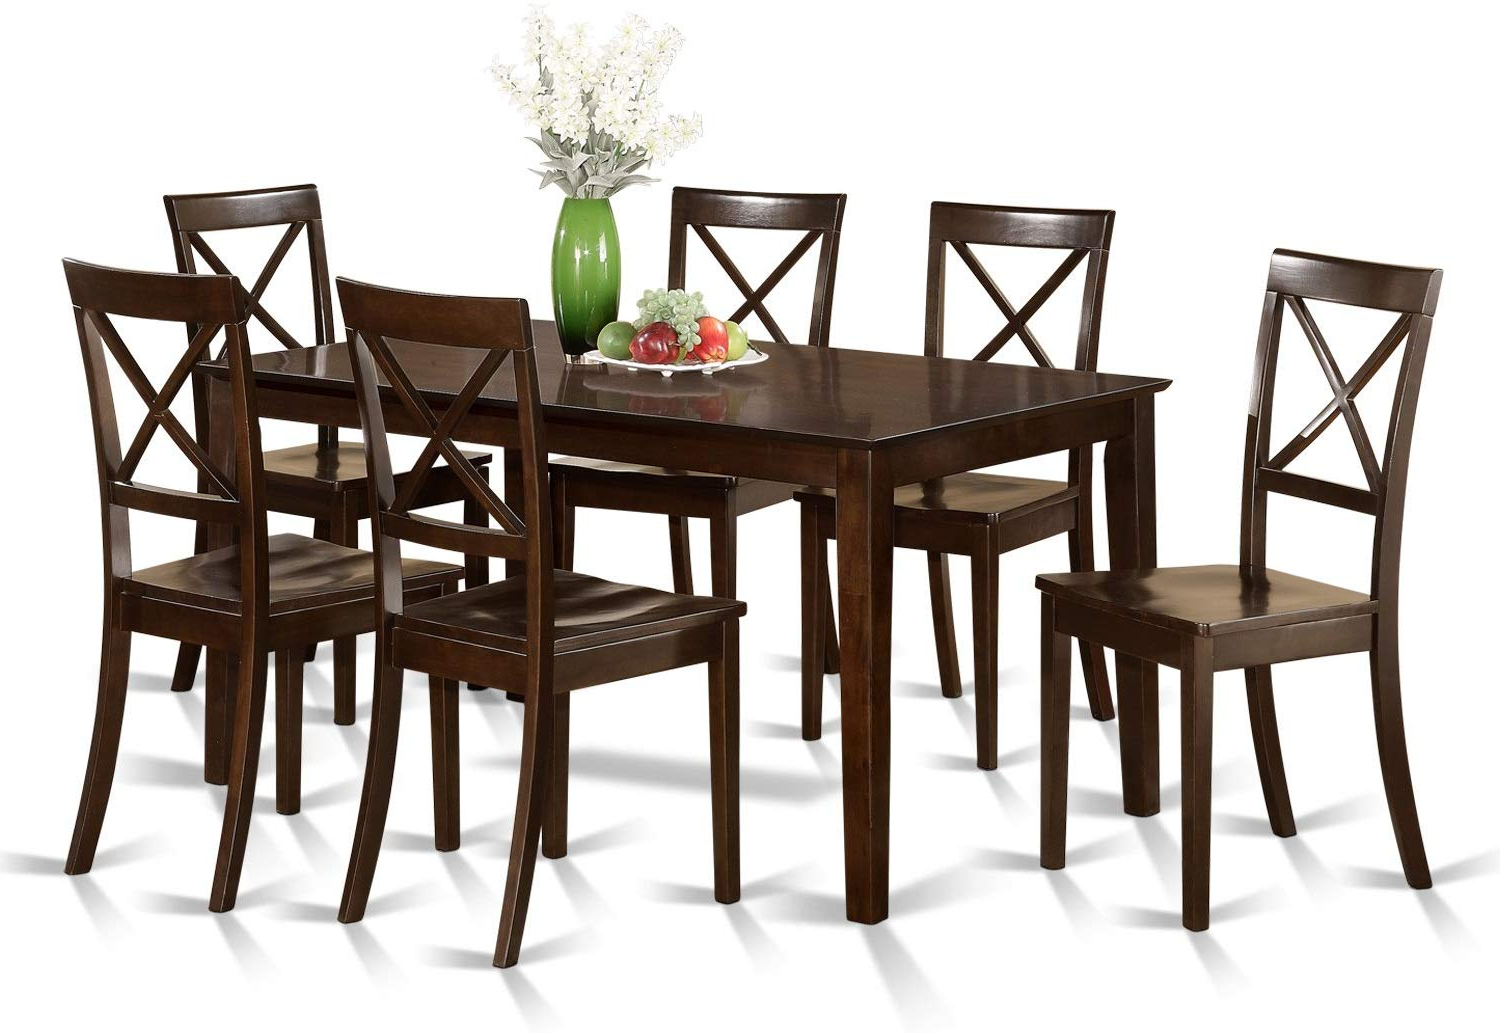 Recent Cab7S Cap W 7 Pc Formal Dining Room Set – Table And 6 Formal Dining Chairs Regarding Cappuccino Finish Wood Classic Casual Dining Tables (View 24 of 30)